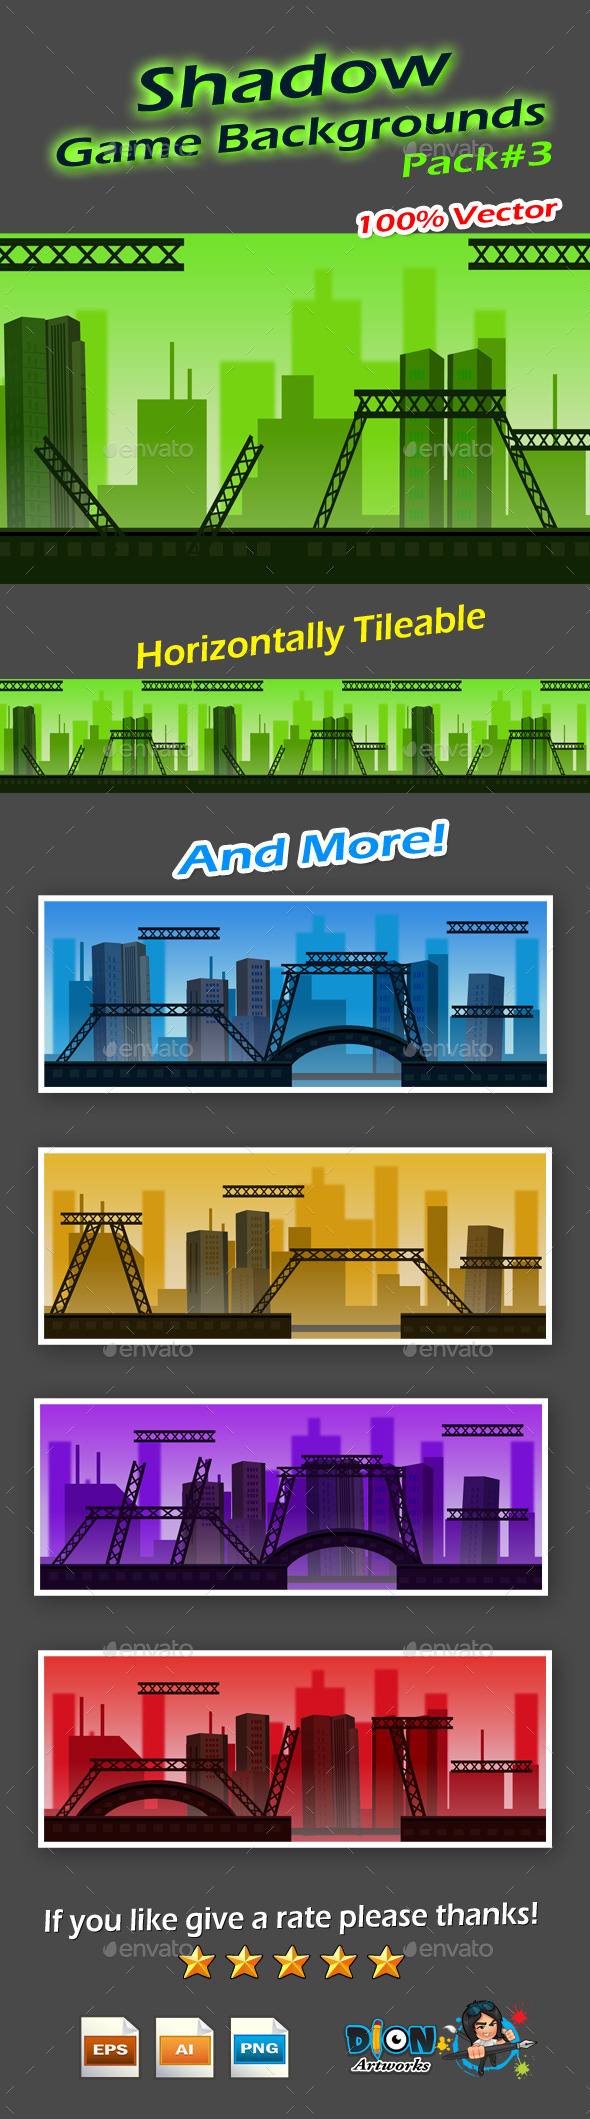 Shadow Game Backgrounds Pack-3 - Backgrounds Game Assets